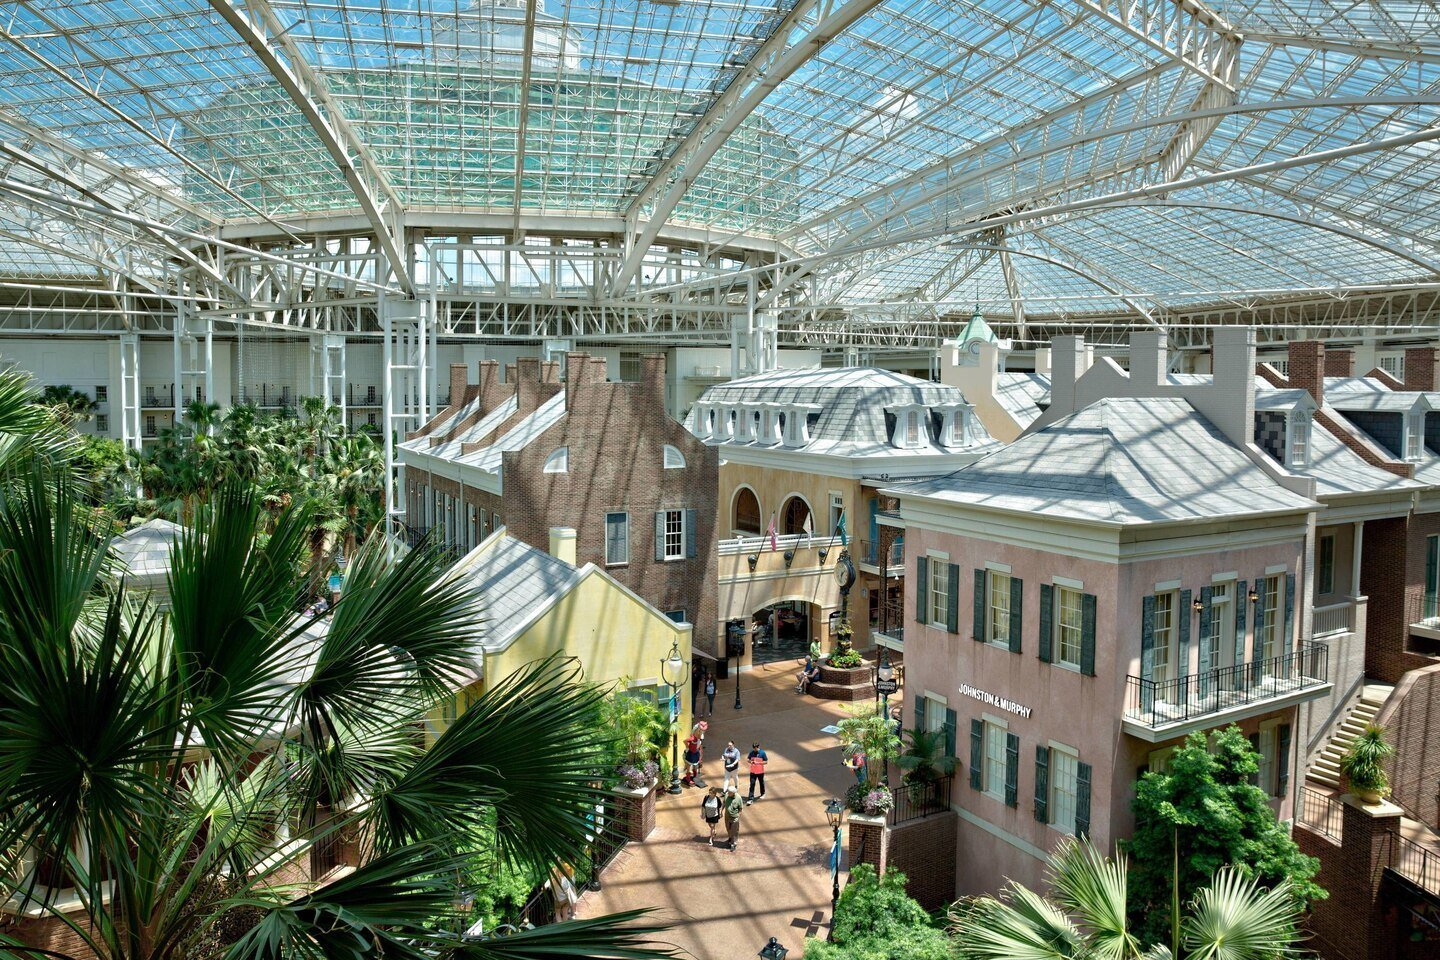 On-site shopping at Gaylord Opryland